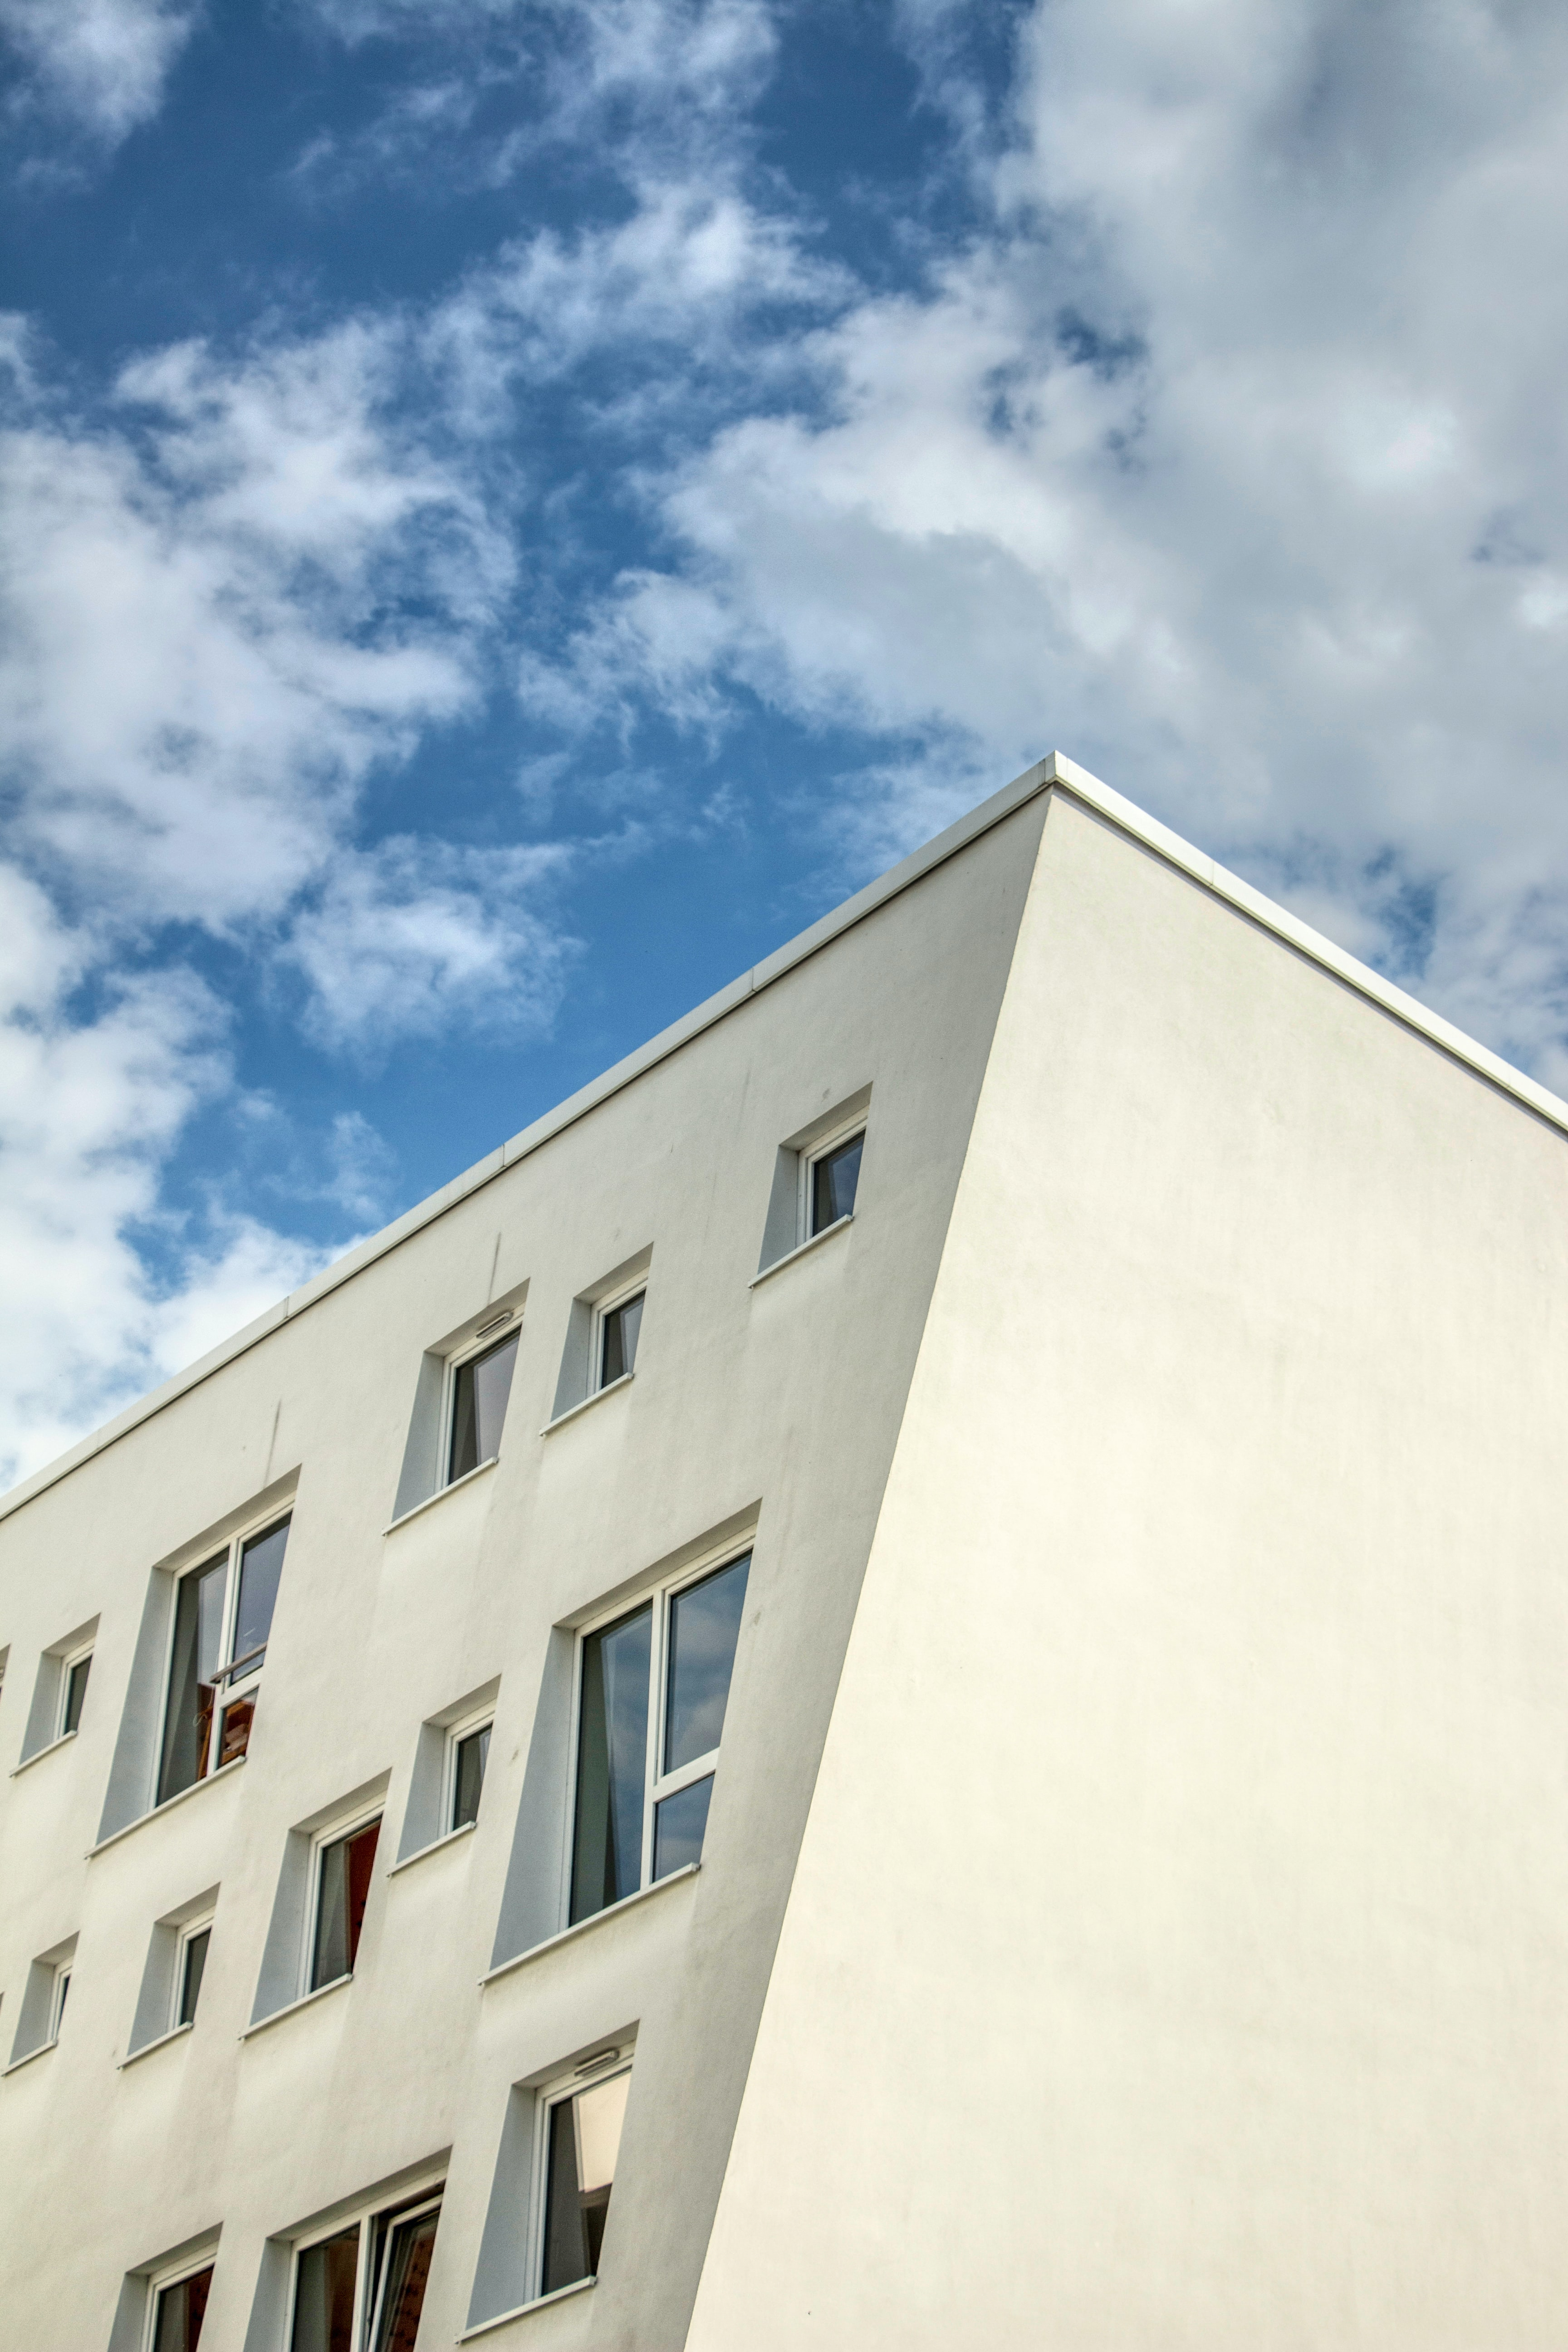 white concrete building under blue and white cloudy daytime sky